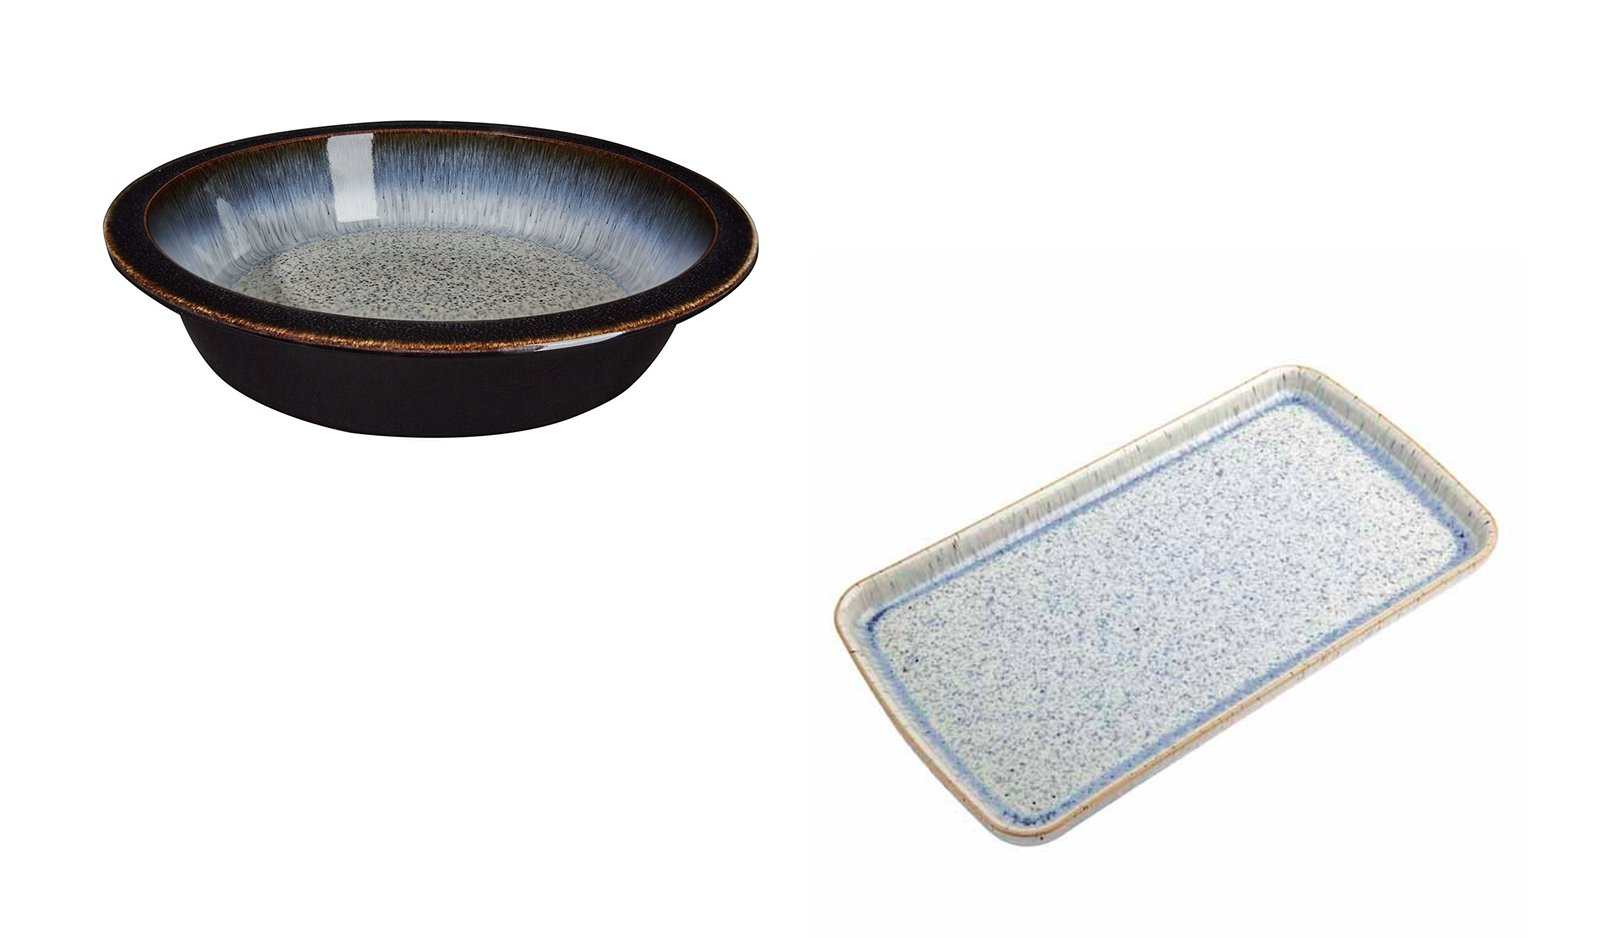 Denby Halo Round Pie Dish and Rectangular Plate, Set of 2